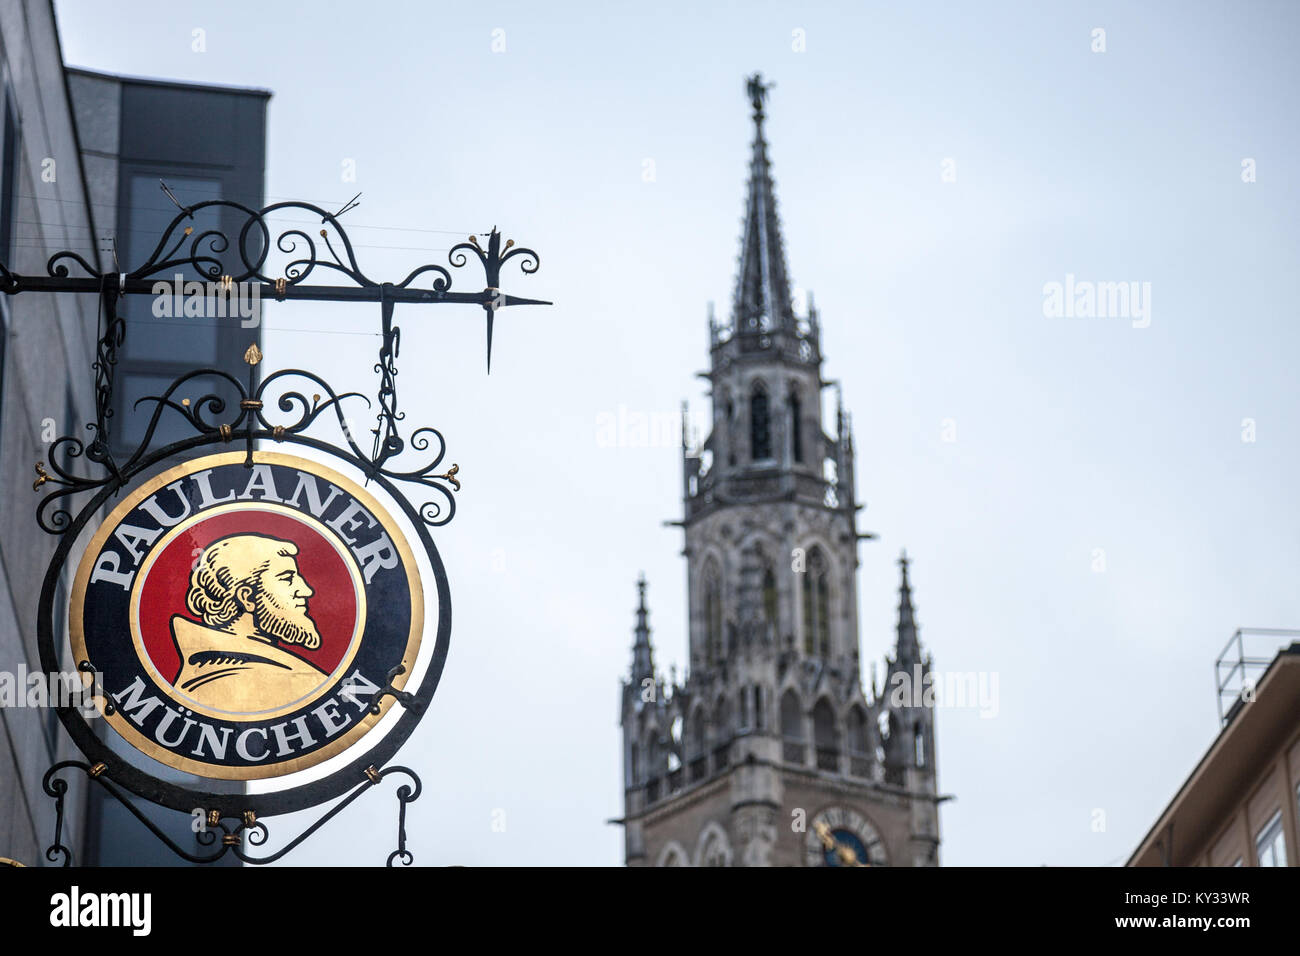 MUNICH, GERMANY - DECEMBER 17, 2017: Paulaner Beer logo in front of Munich New Town Hall (Neues Rathaus). Paulaner - Stock Image